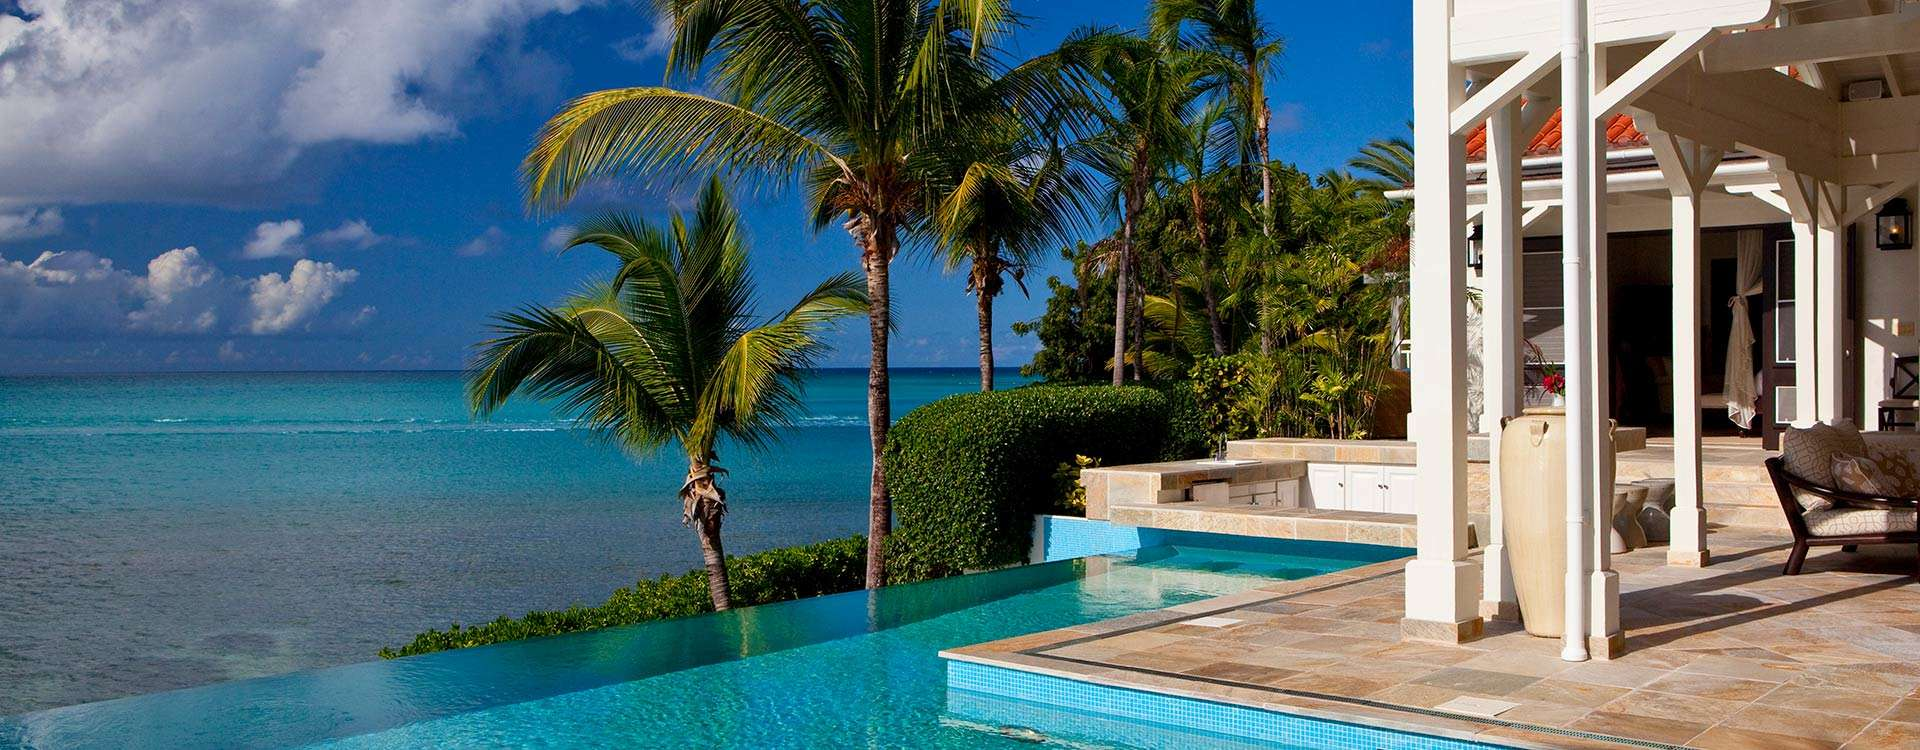 Luxury villa rentals caribbean - Antigua - Jumby bay island - No location 4 - Les Palmiers - Image 1/9